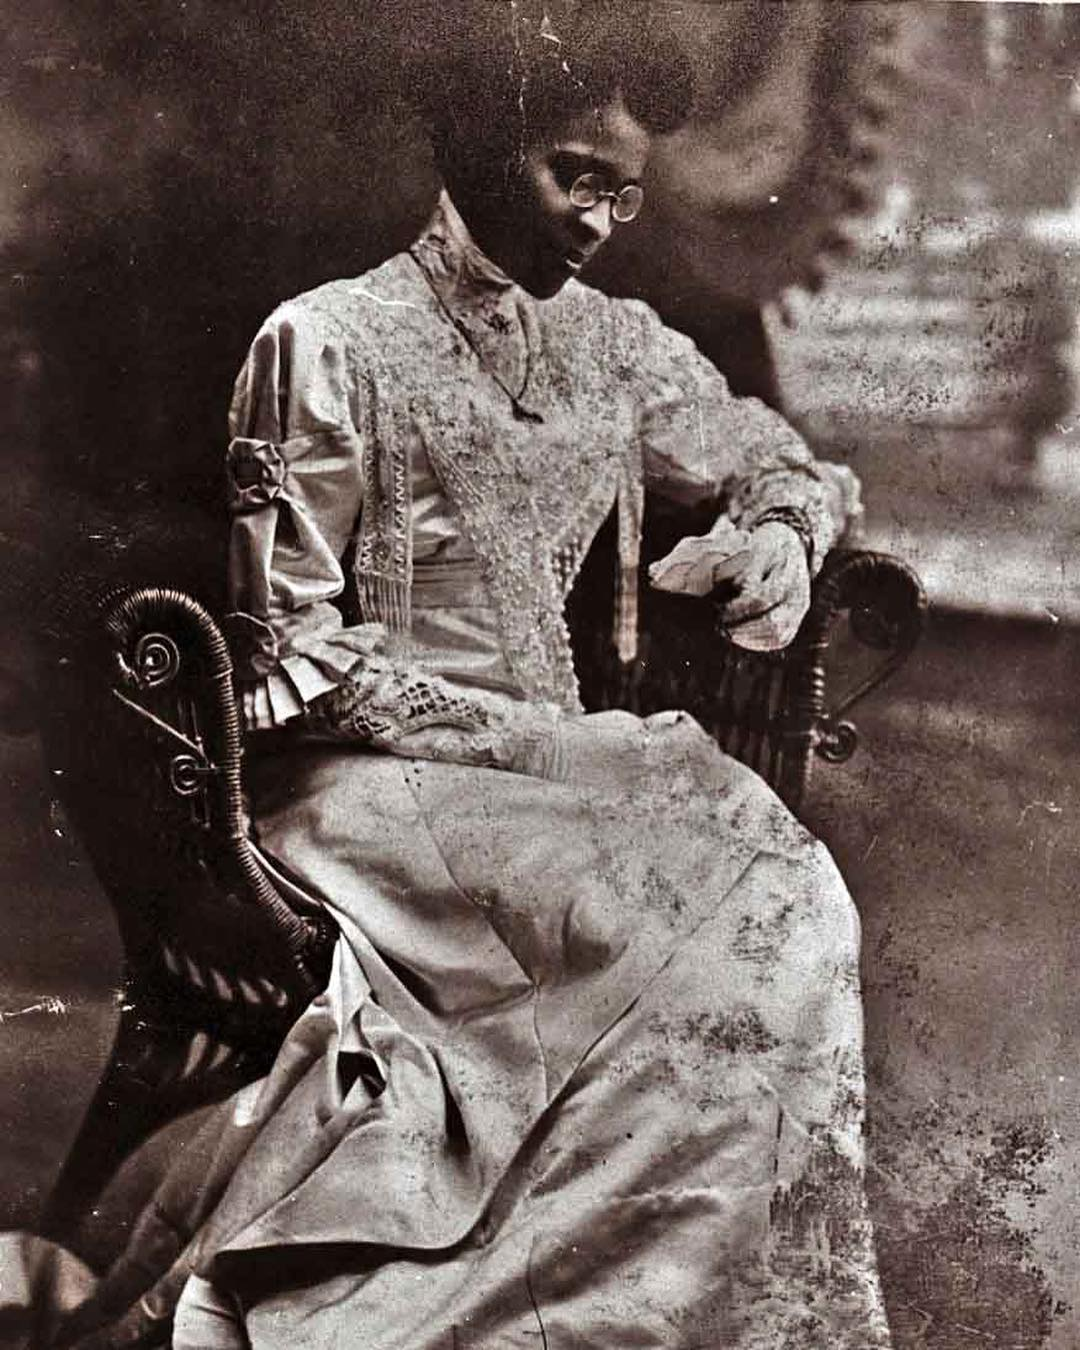 Charlotte Hawkins Brown in her wedding dress, 1912. Credit: NC Department of Natural and Cultural Resources/Public Domain